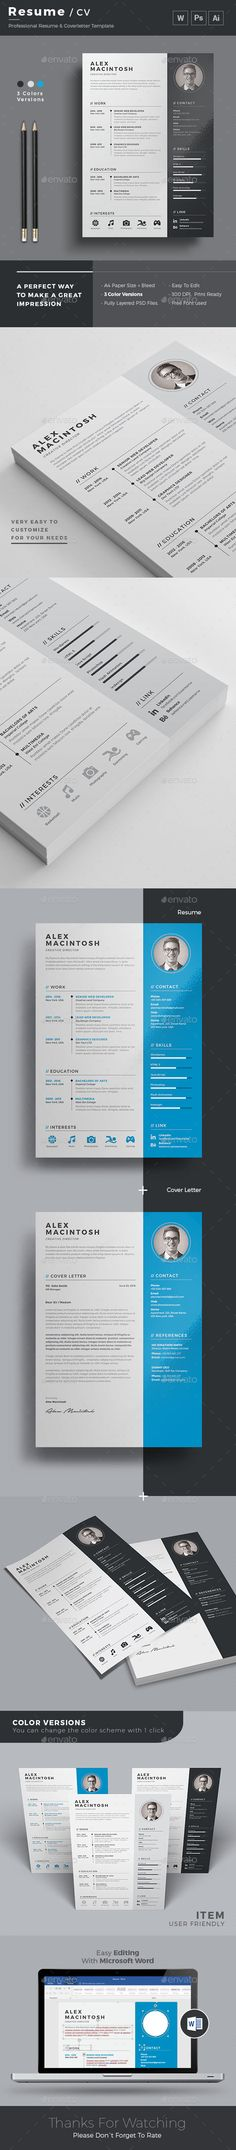 Resume Template PSD, MS Word. Download here: http://graphicriver.net/item/resume/16193189?ref=ksioks